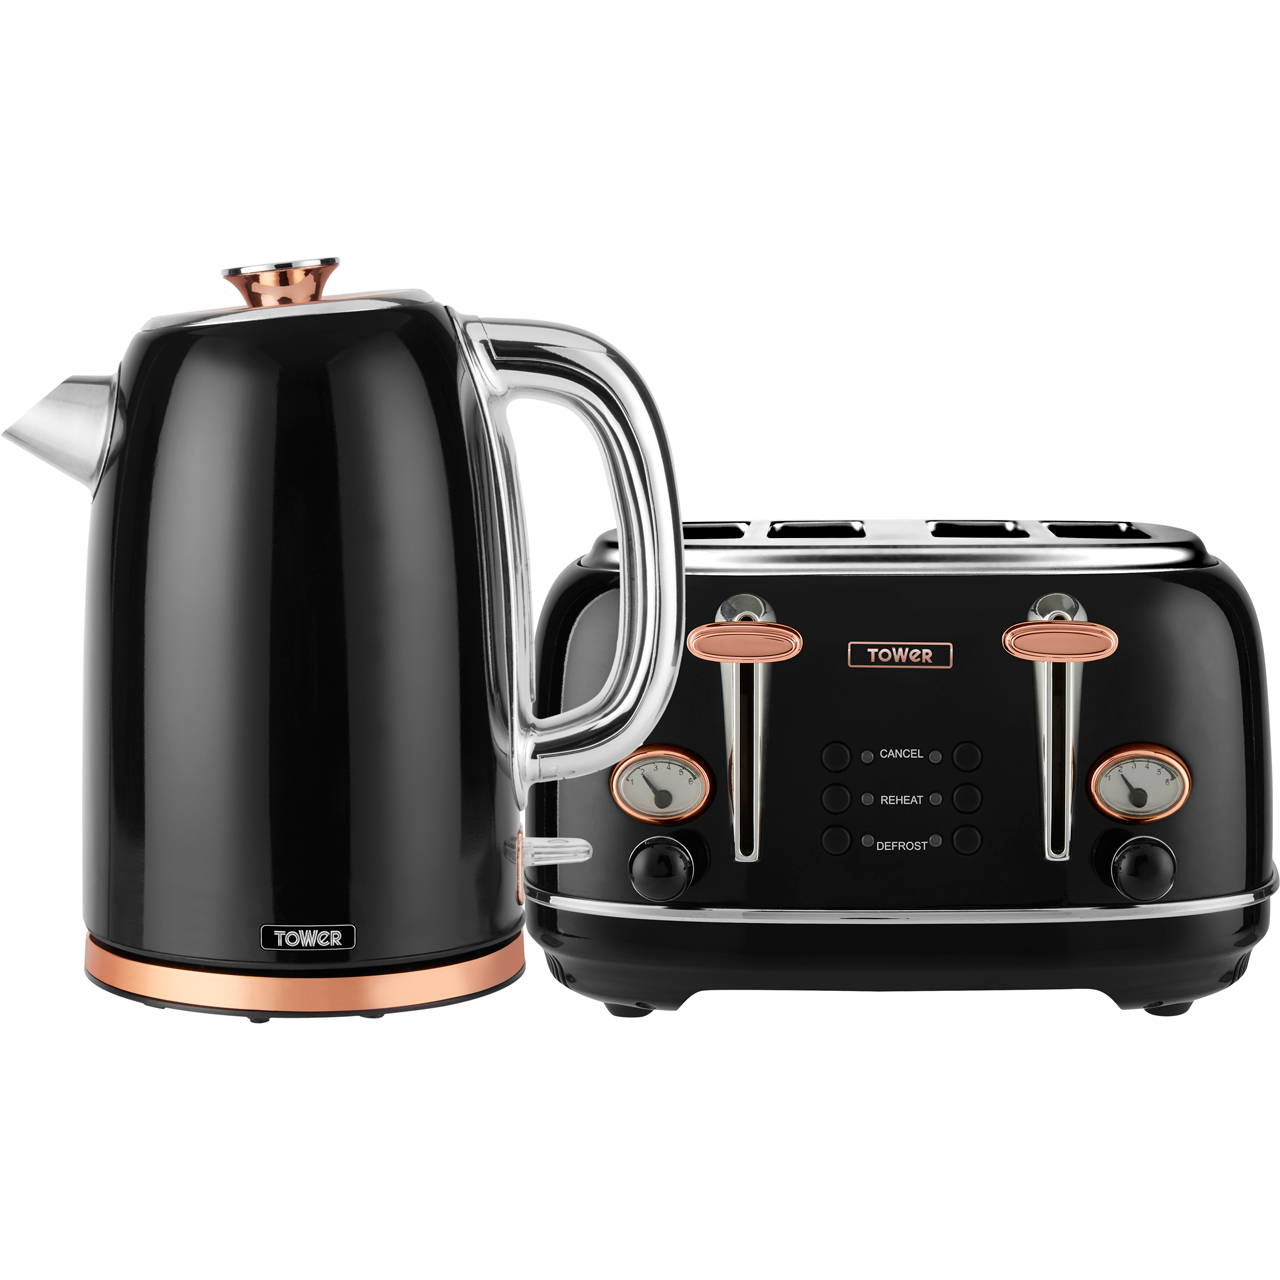 Tower Kettle and Toaster Set | ao